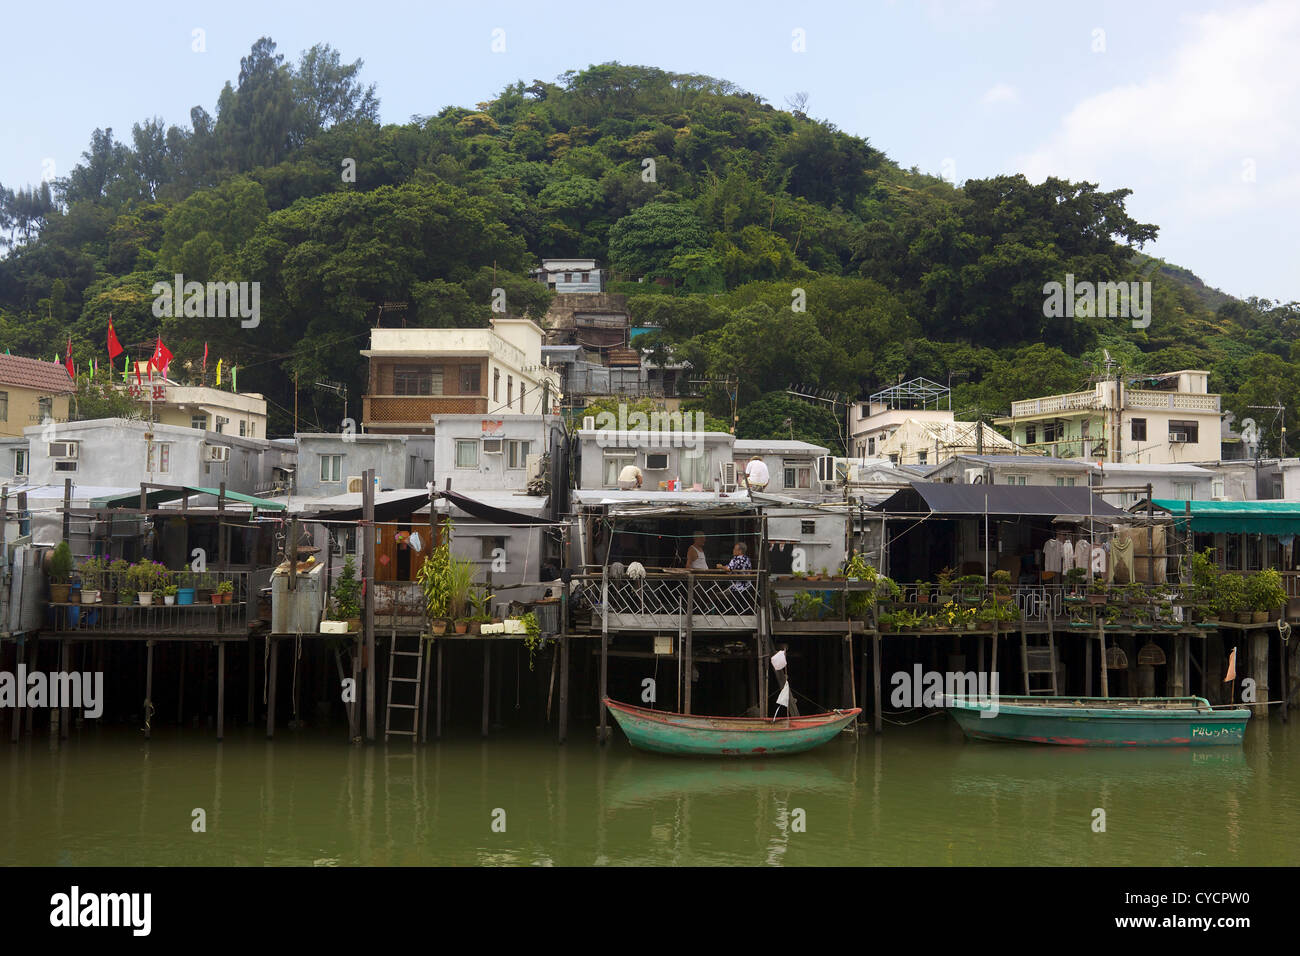 Elderly couple on the balcony of their house in Tai O fishing village. Lantau island, Hong Kong - Stock Image